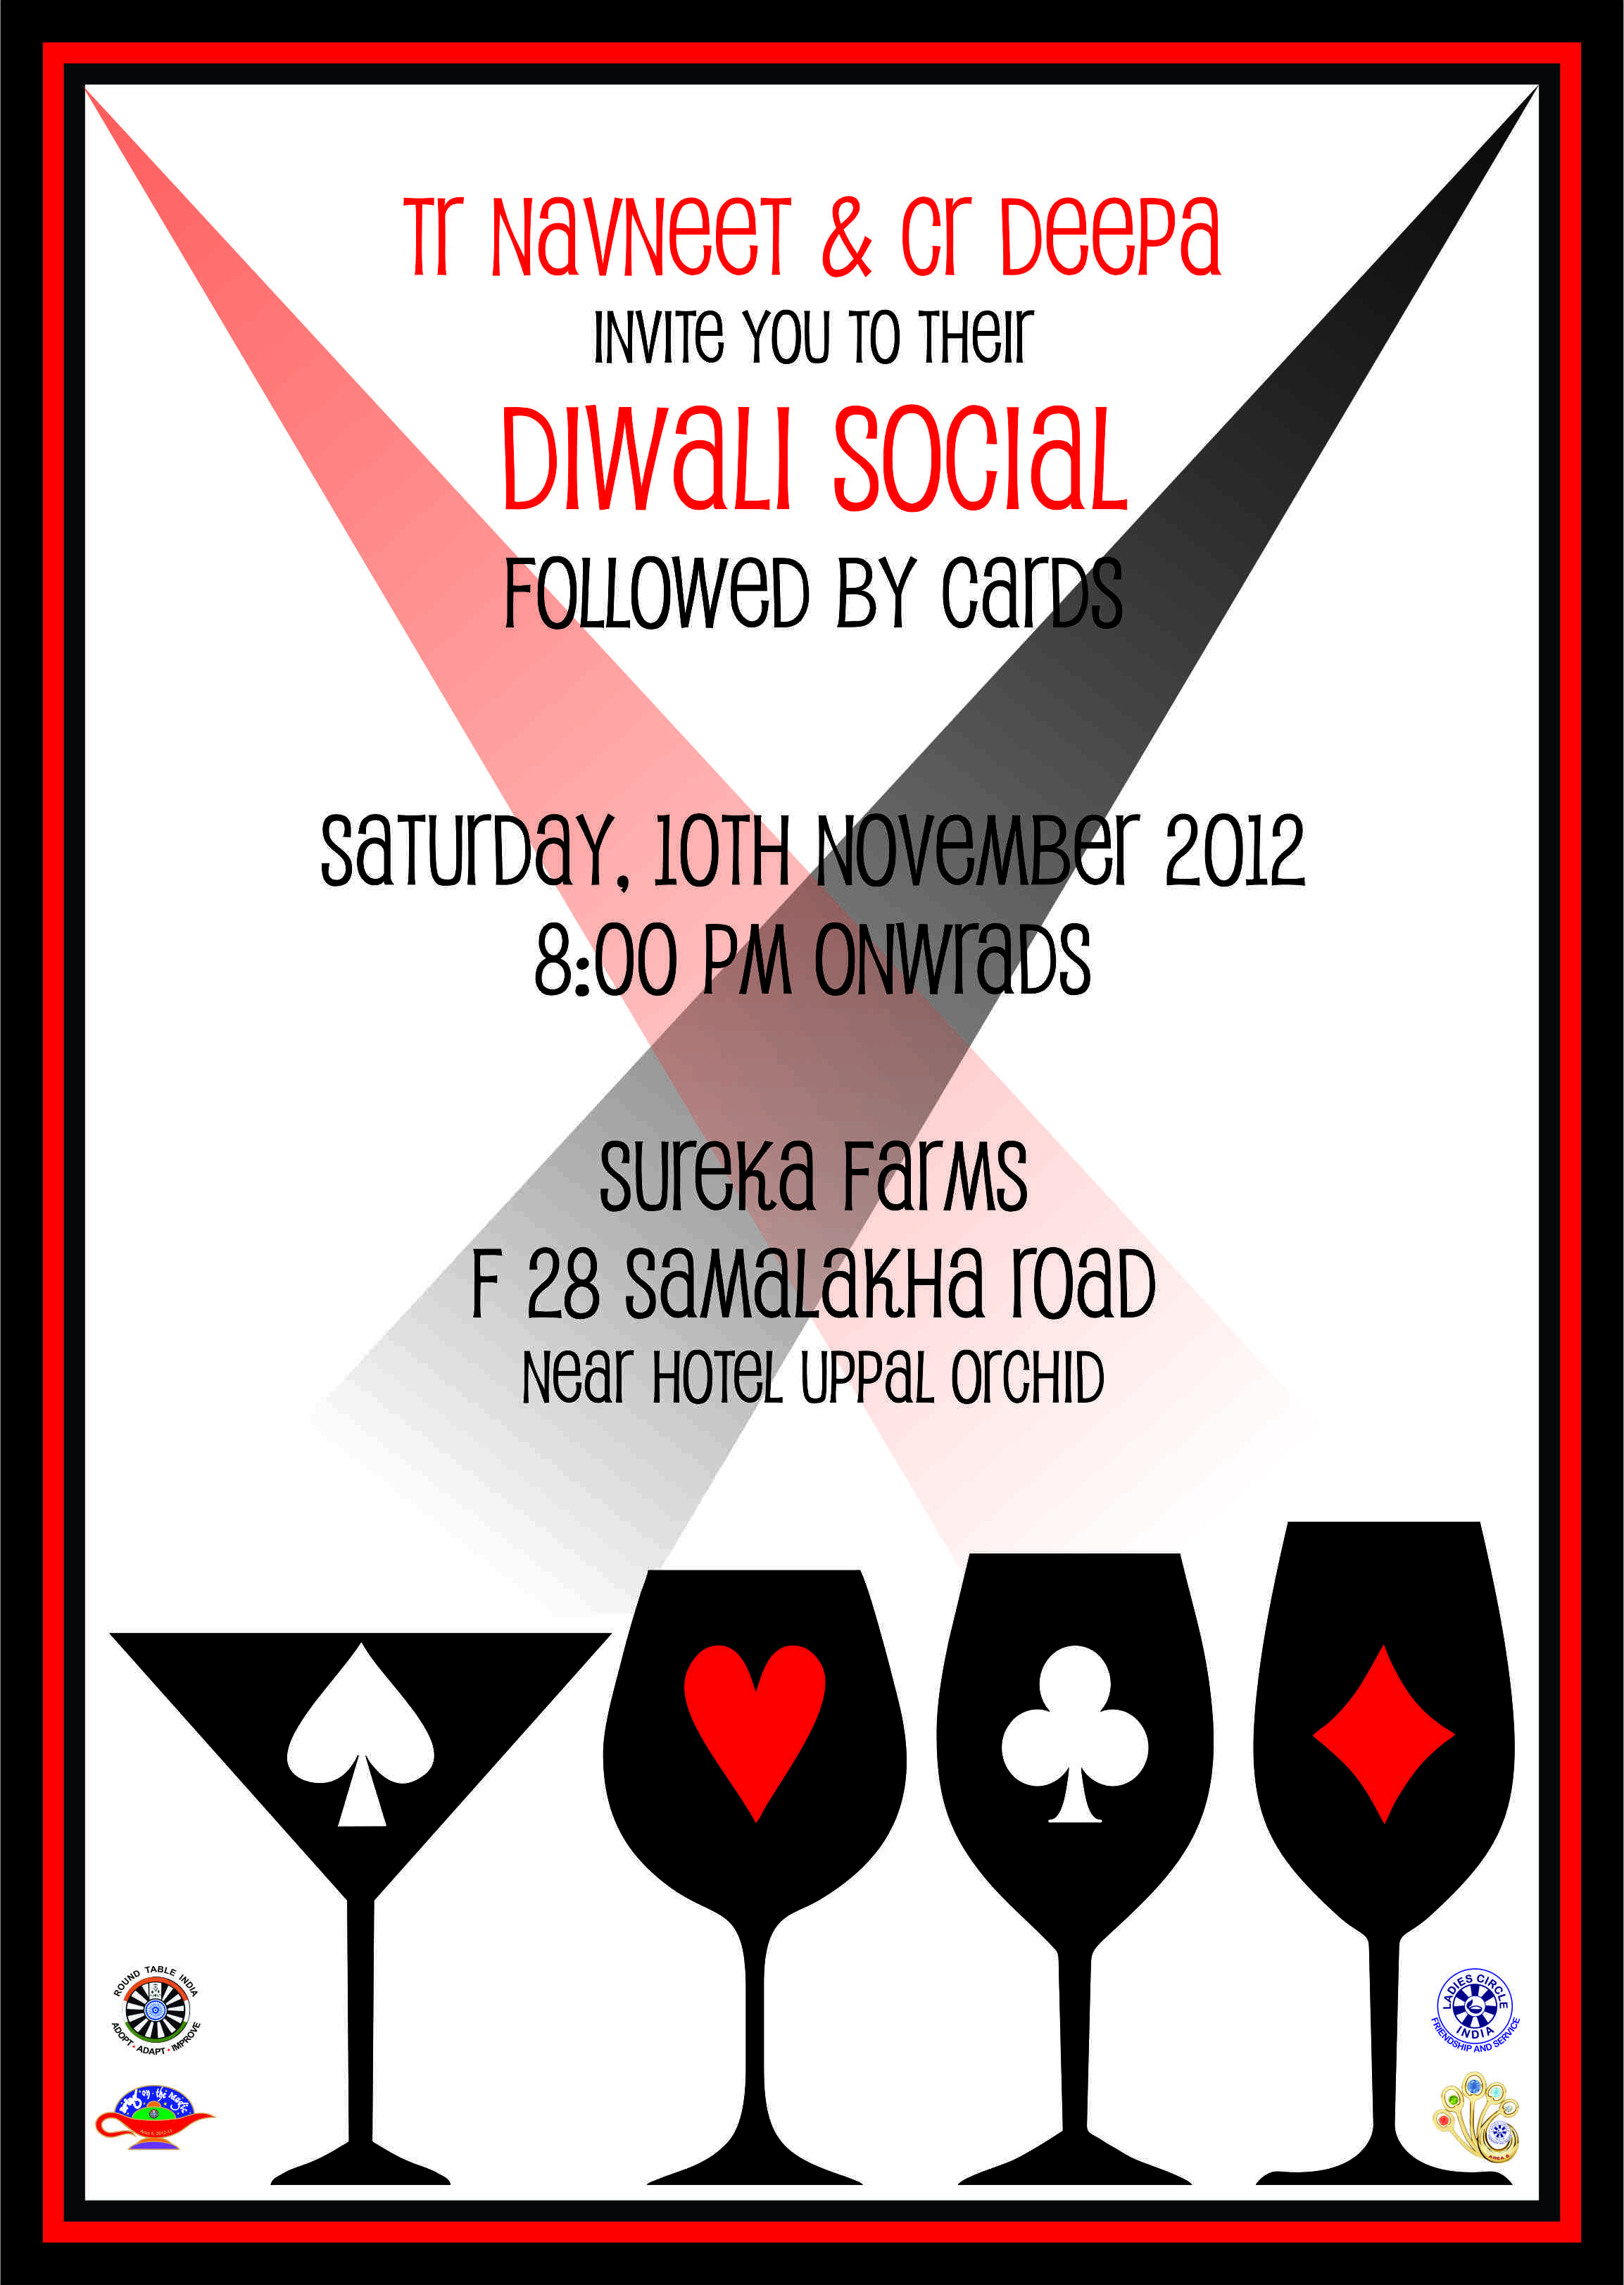 Invitation for diwali get together on 10th nov 2012 glmf dmrt share this stopboris Choice Image